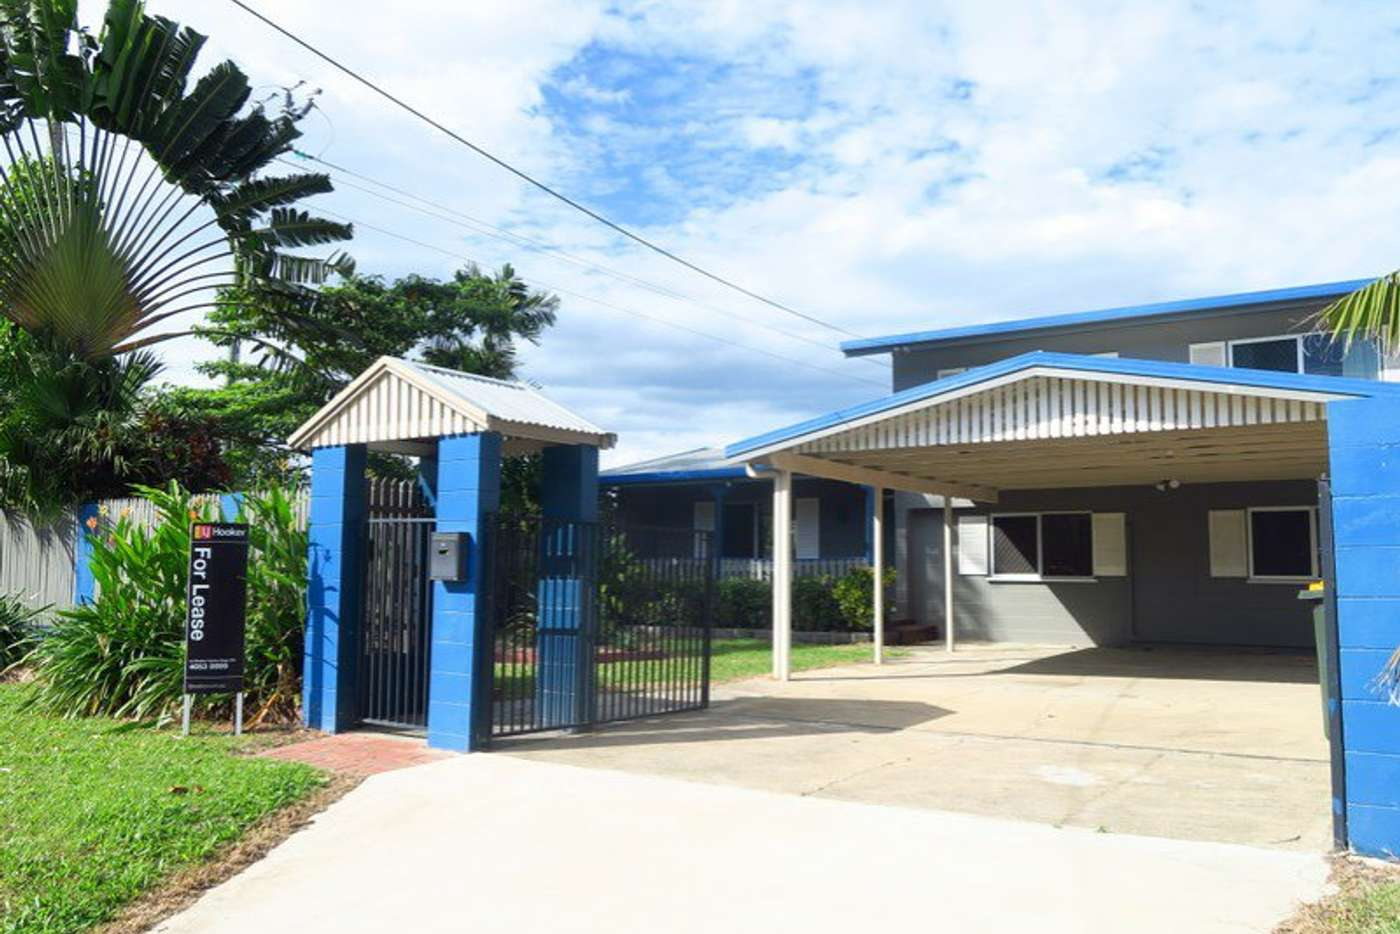 Main view of Homely house listing, 1 Torrance Avenue, Edge Hill QLD 4870